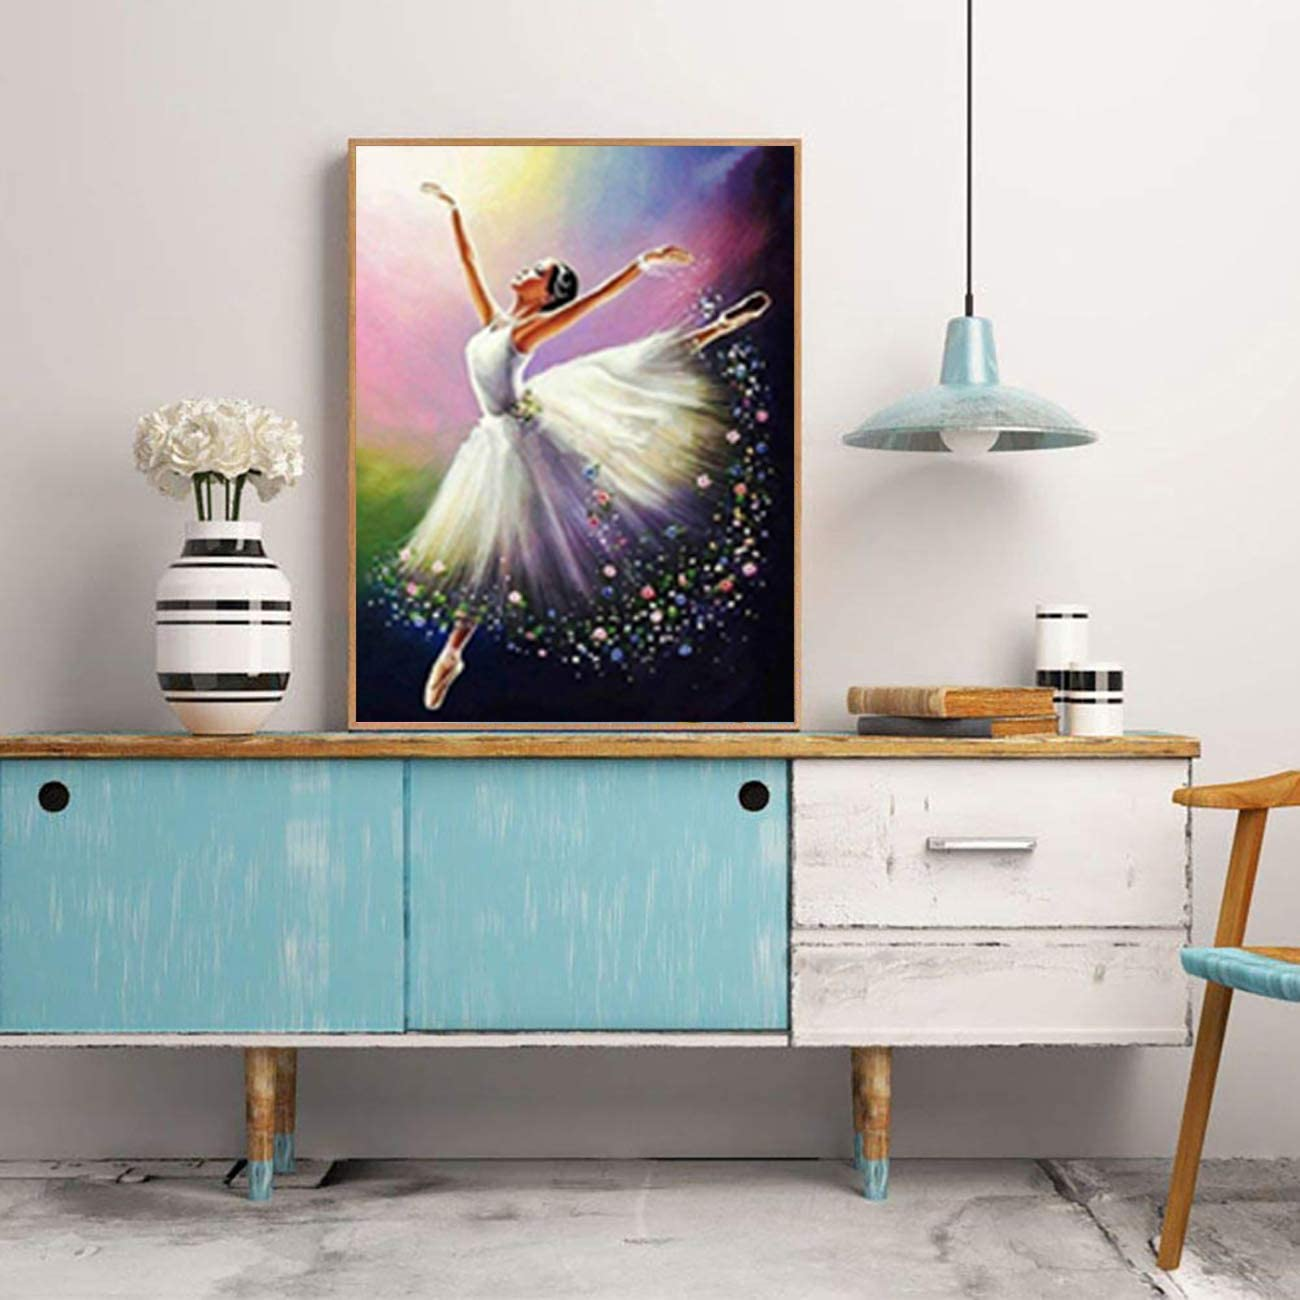 SKRYUIE DIY Rhinestone Pasted Paint with Diamond Set Arts Craft Decorations 12x16inch 5D Diamond Painting Dancer Full Drill by Number Kits